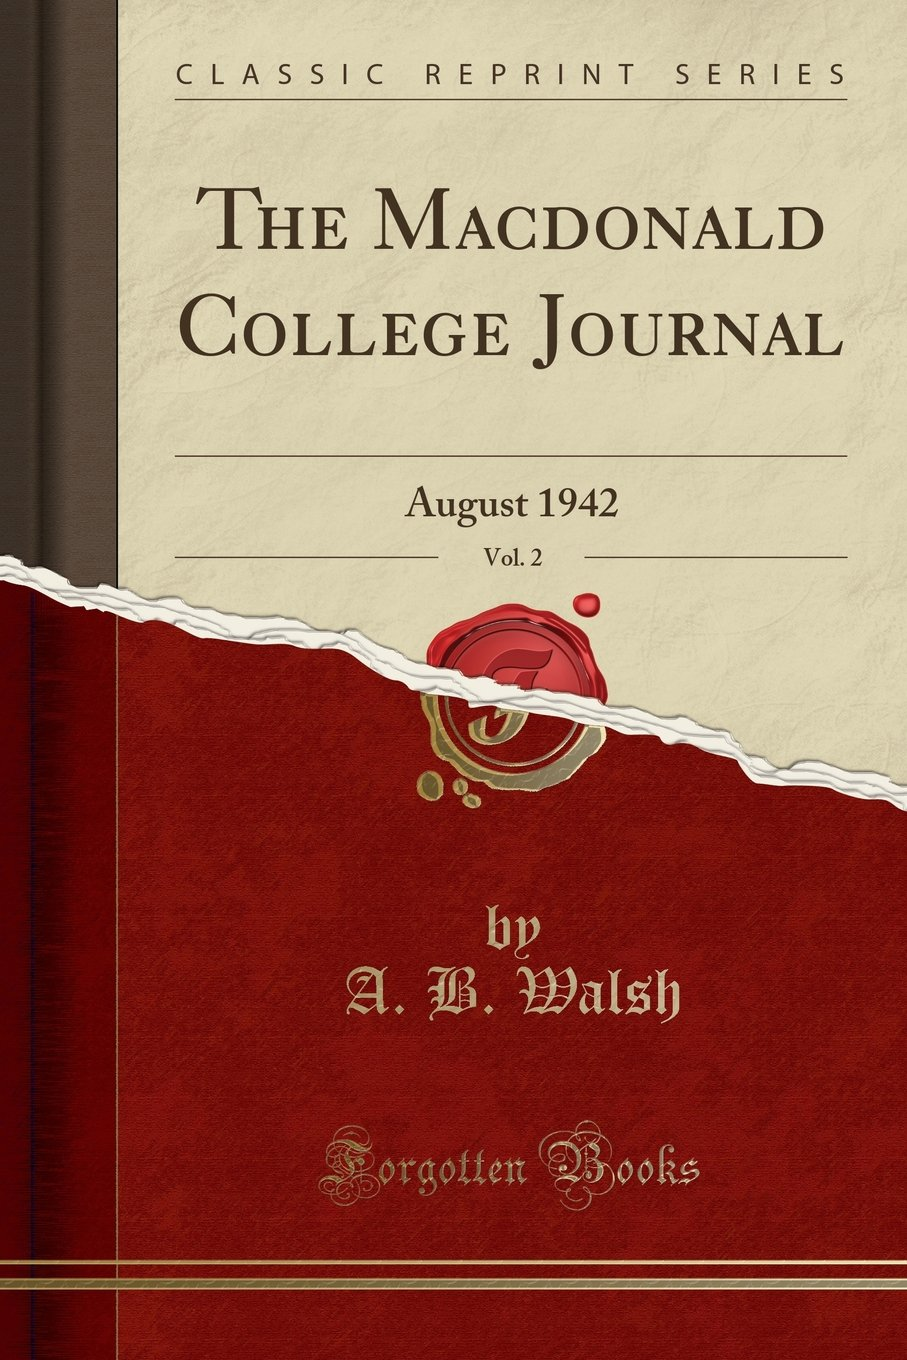 The Macdonald College Journal, Vol. 2: August 1942 (Classic Reprint) PDF